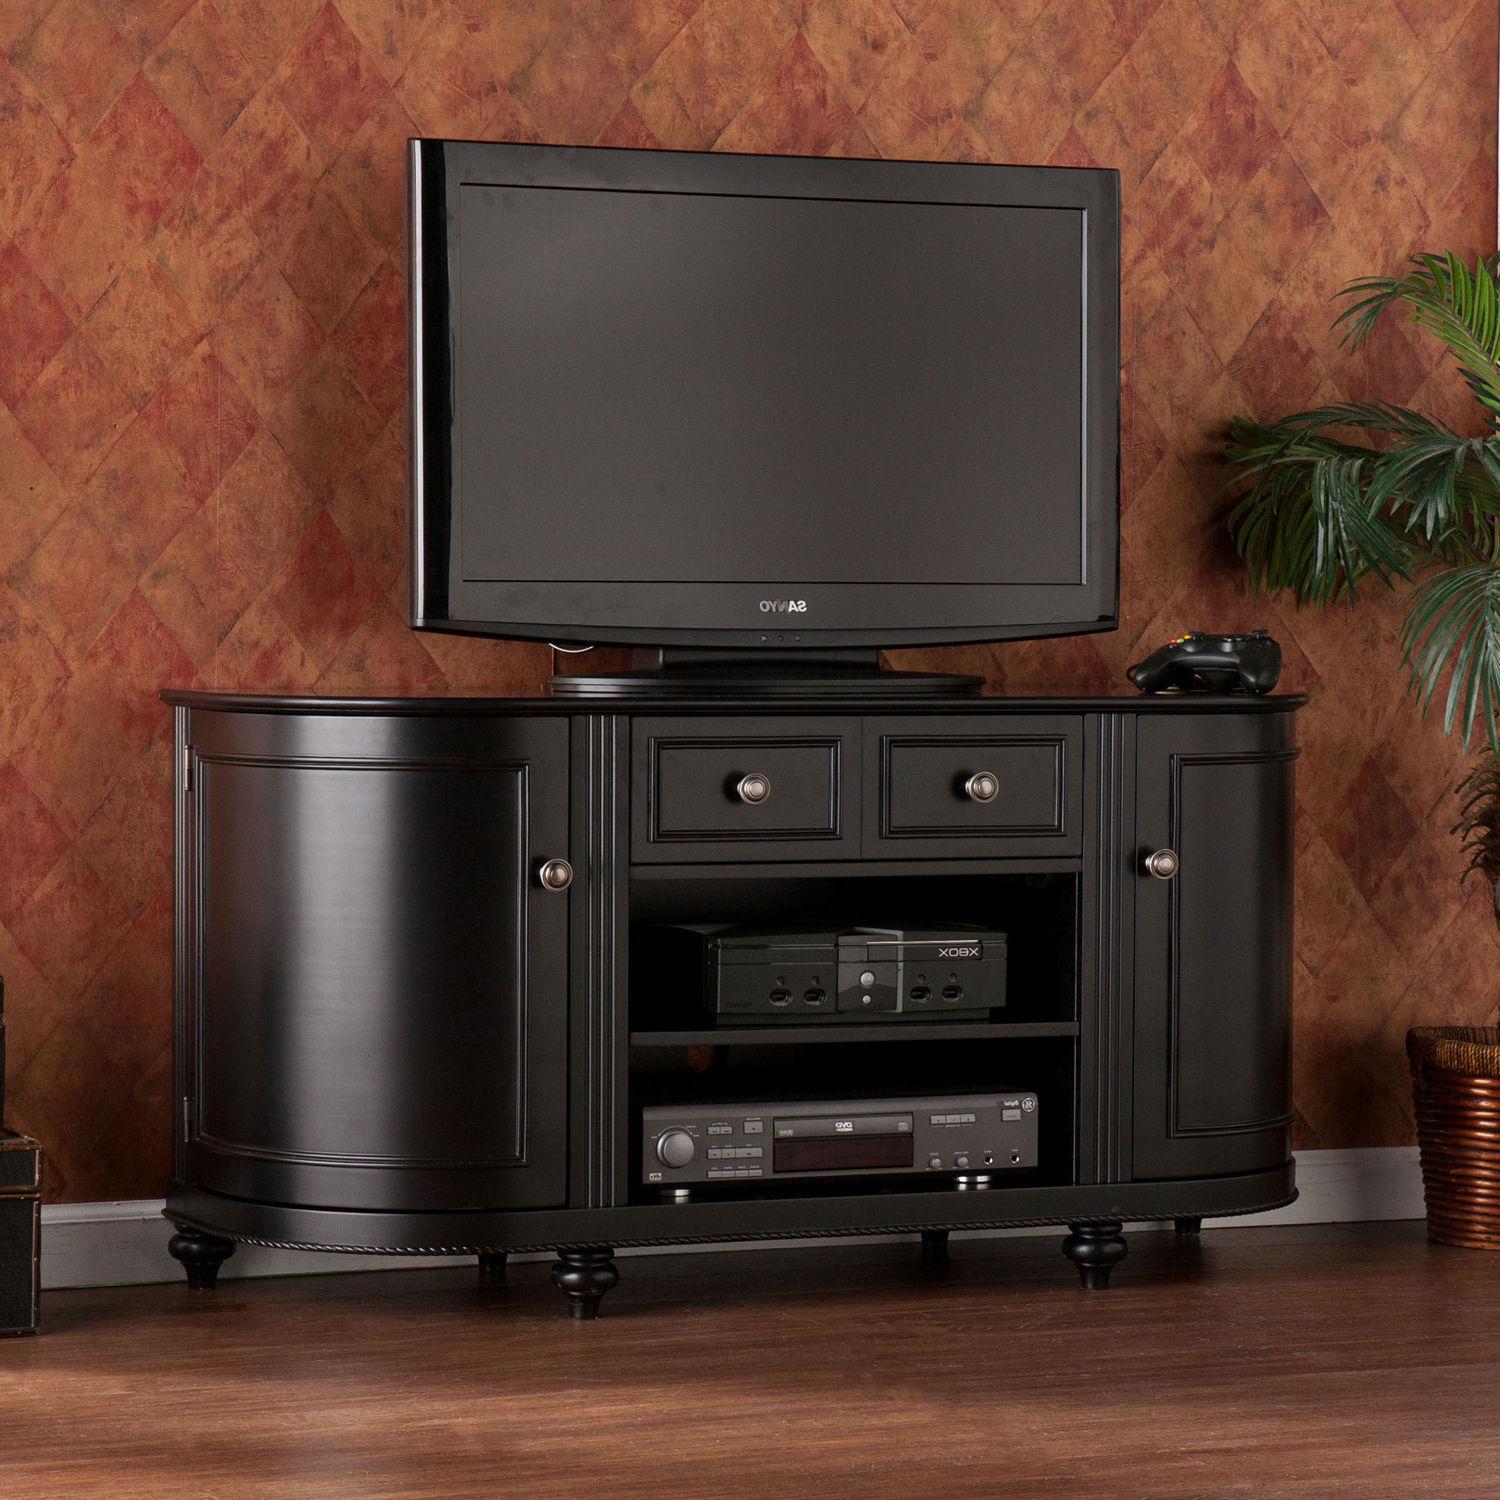 Southern Enterprises Dandridge Black Tv Stand Ms8341 | Bellacor For Rowan 45 Inch Tv Stands (View 14 of 20)